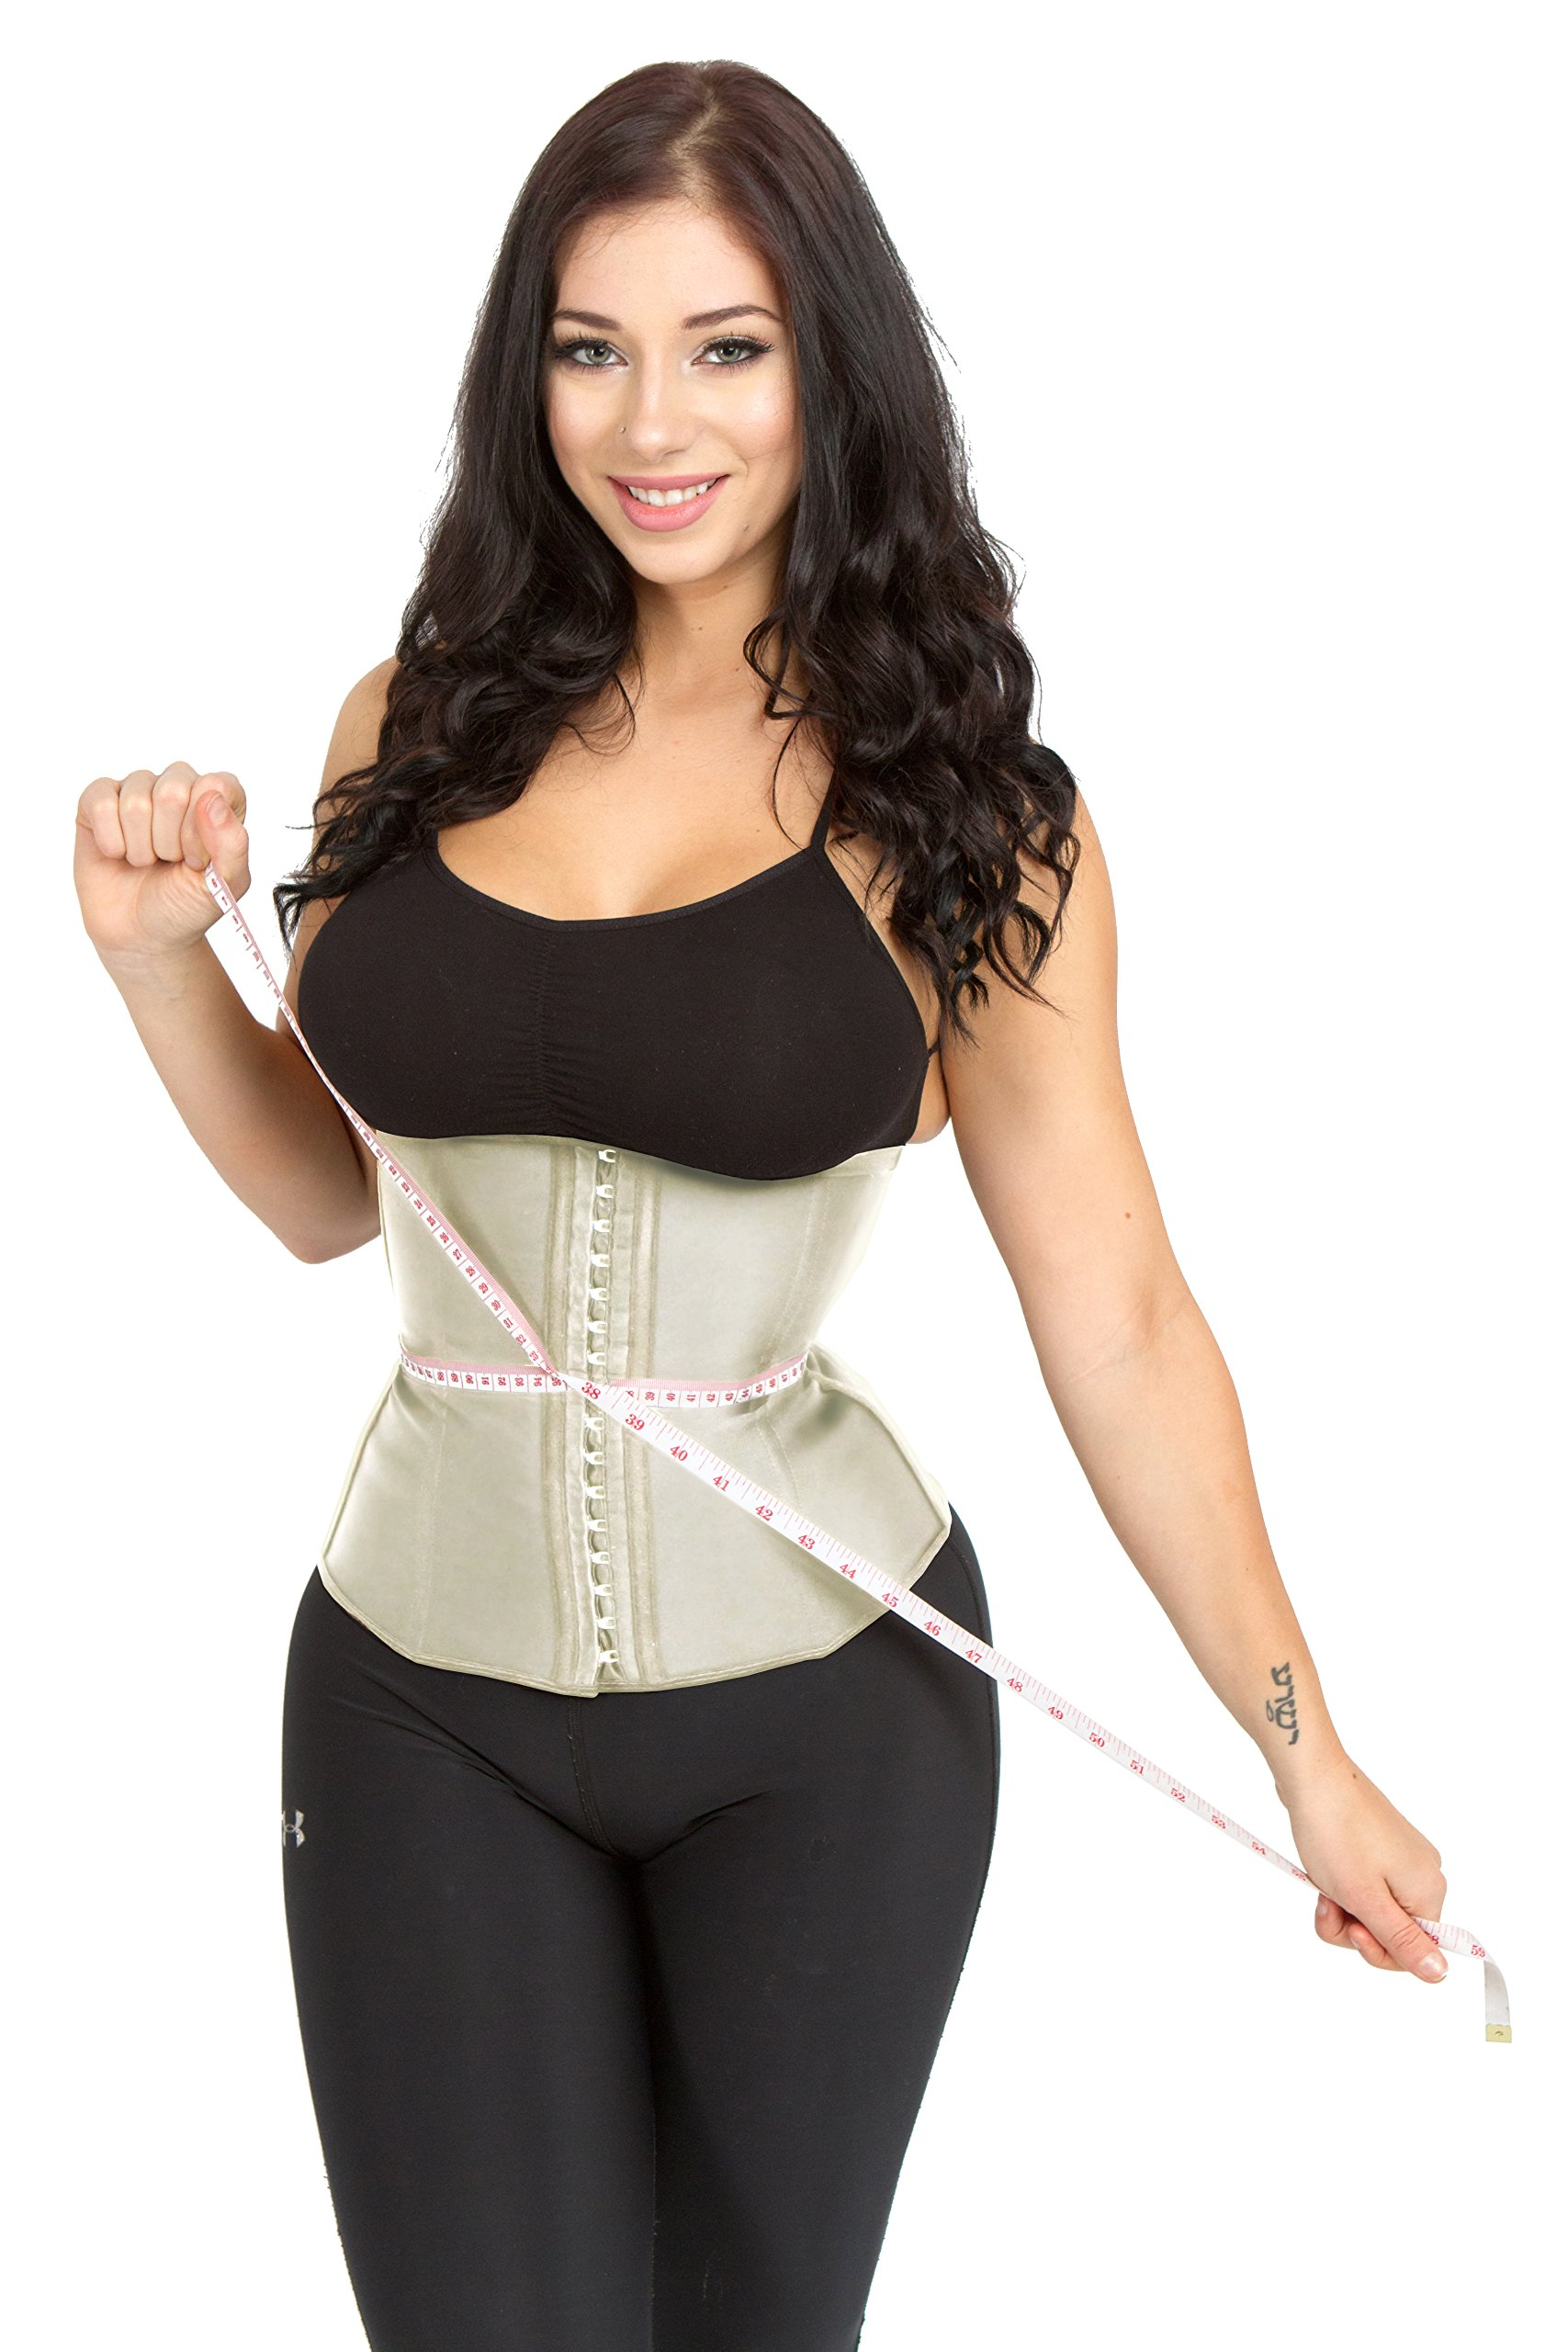 fec798be29 Galleon - Luxx Curves Luxx Health Waist Trainer Corsets For Women Fajas  Reductoras Y Moldeadoras Trimmer For Weight Loss